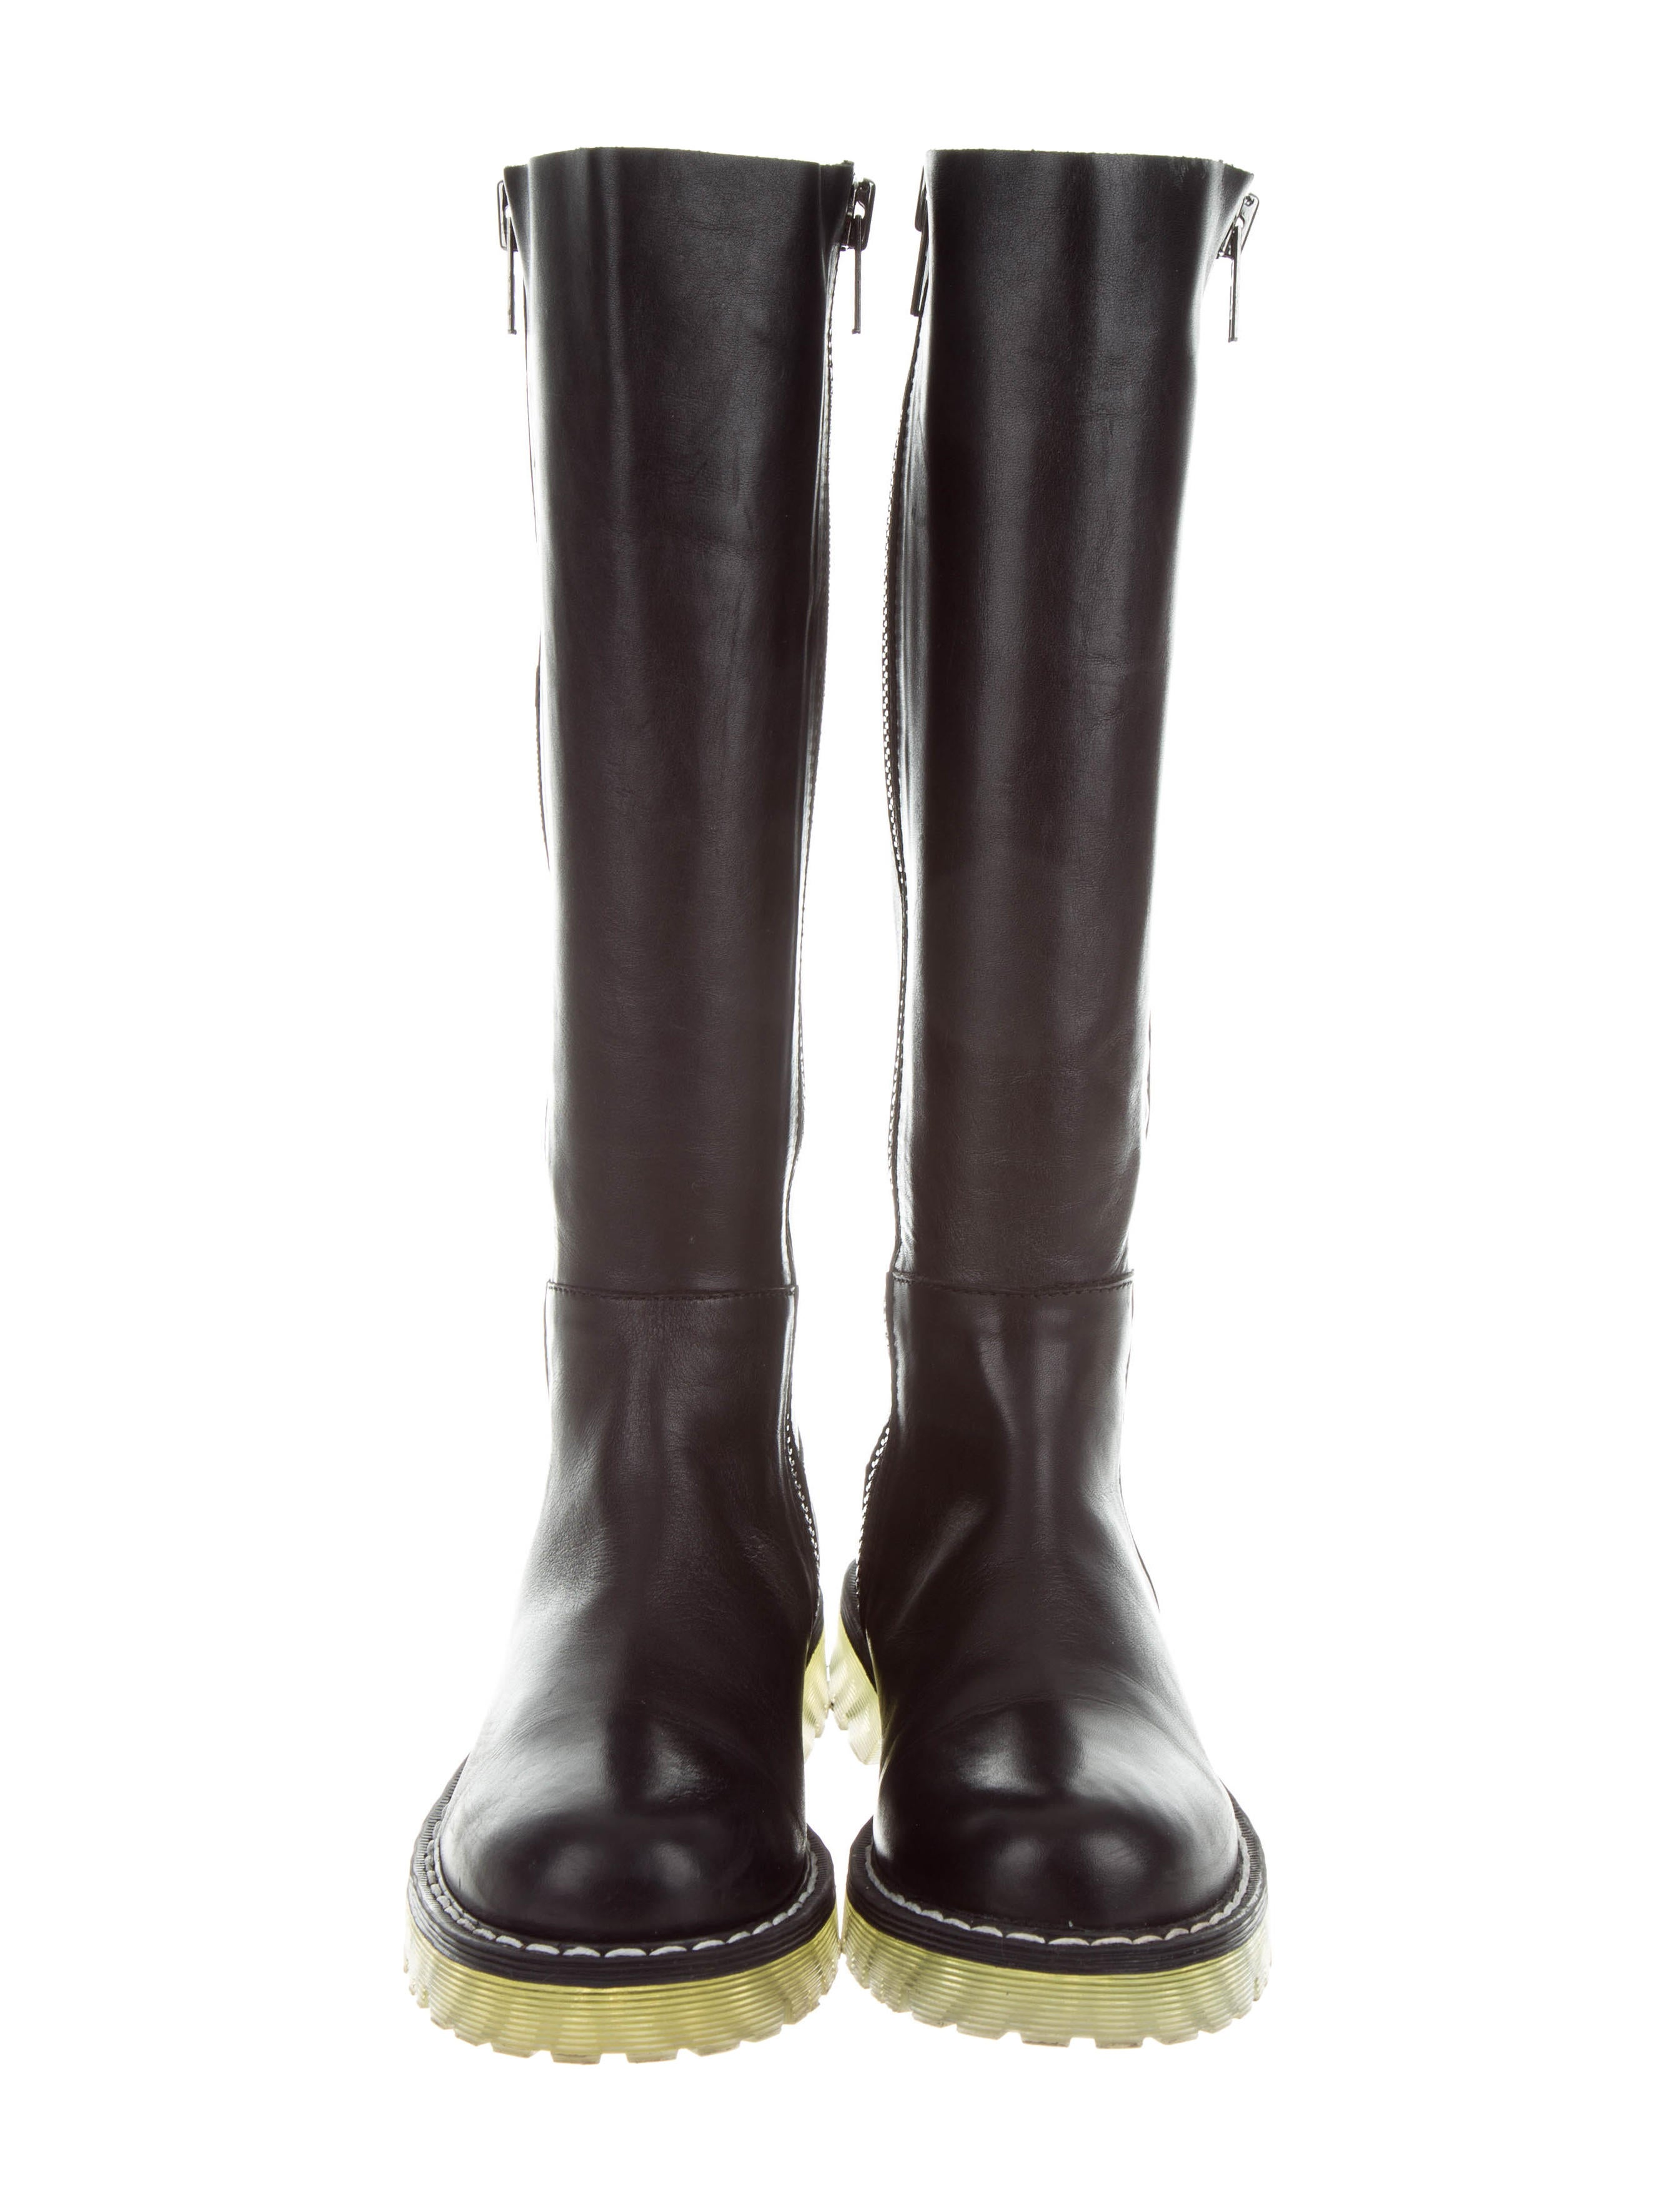 Cotélac Leather Knee-High Boots cheap 2014 new hot sale new arrival cheap price sale under $60 Ksh4K0yp6w